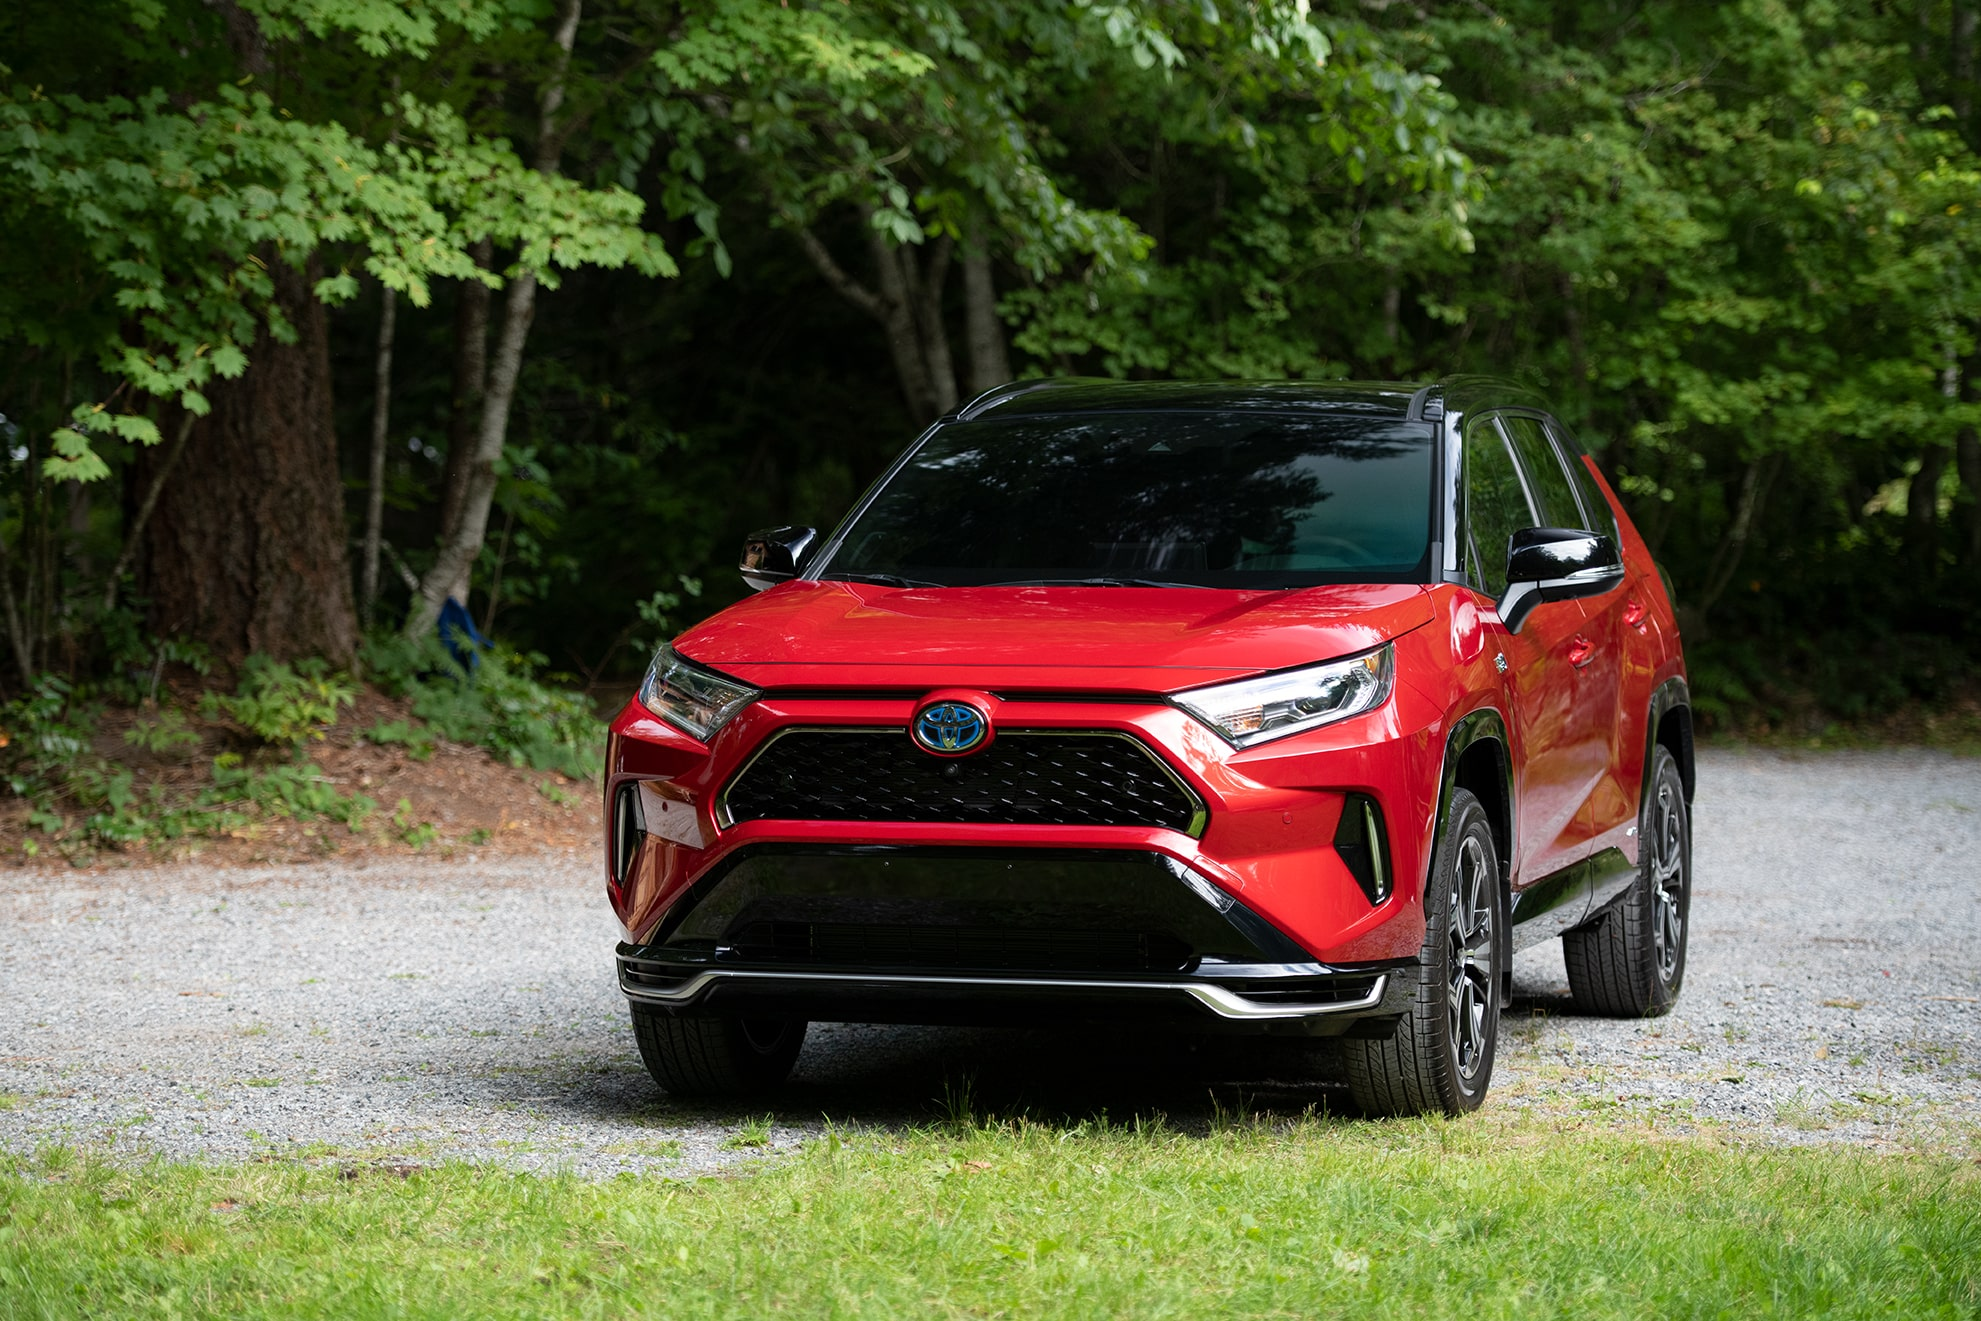 Introducing the 2021 RAV4 Prime – Toyota's Newest PHEV